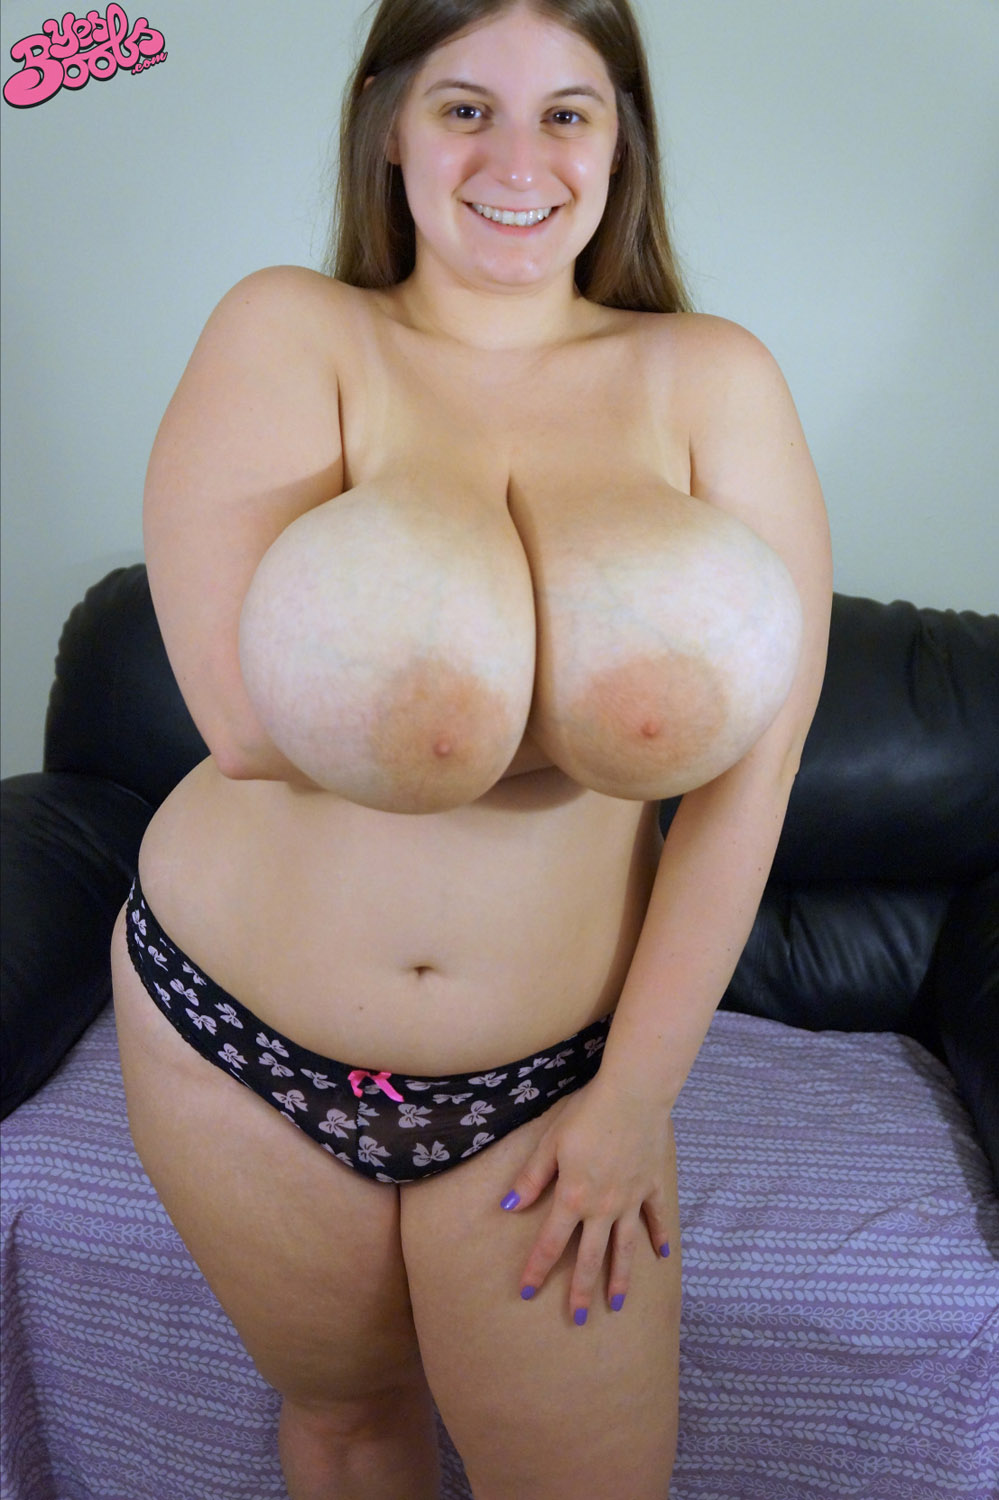 Bbw doing her favorite thing - 3 part 1